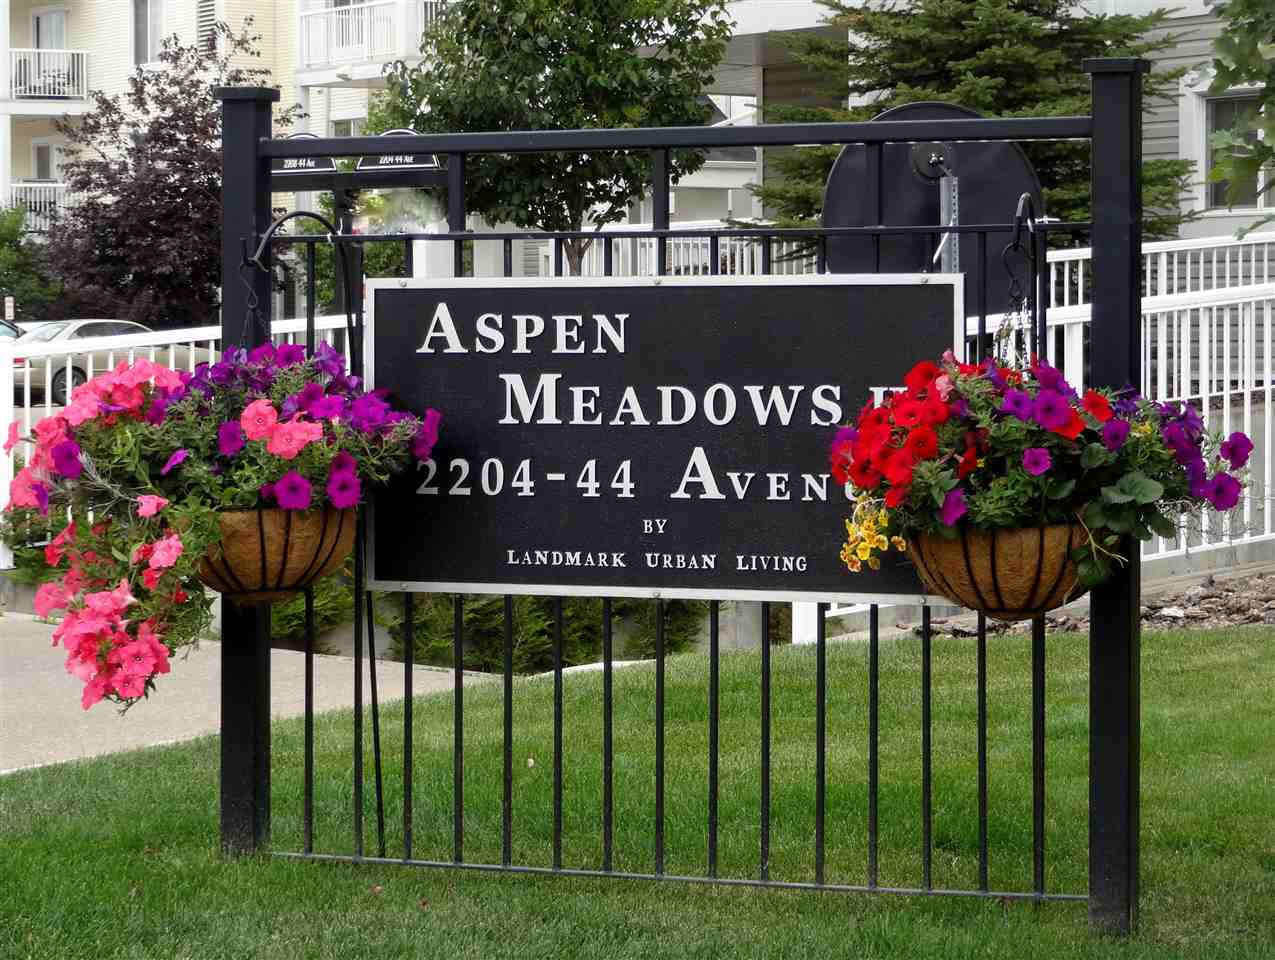 Cheaper Than Rent ~ $154,900-5% down deposit ($7,745)+CMHC fee ($5,886) = $153,041 x 25 year amortization x 1.84% interest rate = $636.00 monthly mortgage payment* Welcome to Aspen Meadows offering condo living at its finest & special bonus the Condo Fees include heat, water & electricity!  Immaculate Condition ... This modern and sleek 1 bedroom & 1 bathroom home showcases - Hardwood flooring, gorgeous granite countertops, stainless steel appliances & rich dark maple kitchen cabinets to the ceiling, glistening hardwood in the large living room with warm natural light flowing through the patio doors.  The private east facing patio provides peace & tranquility backing onto trees and green space.  Rest easy in the large bedroom with walk-through closet with dual sides leading to your 4-piece bathroom.  The In-suite Laundry Room with full sized washer and dryer is fabulous.  This unit comes with a 4x8' storage locker located on same floor AND 1 Titled Parking Stall in the heated underground parkade.  *OAC